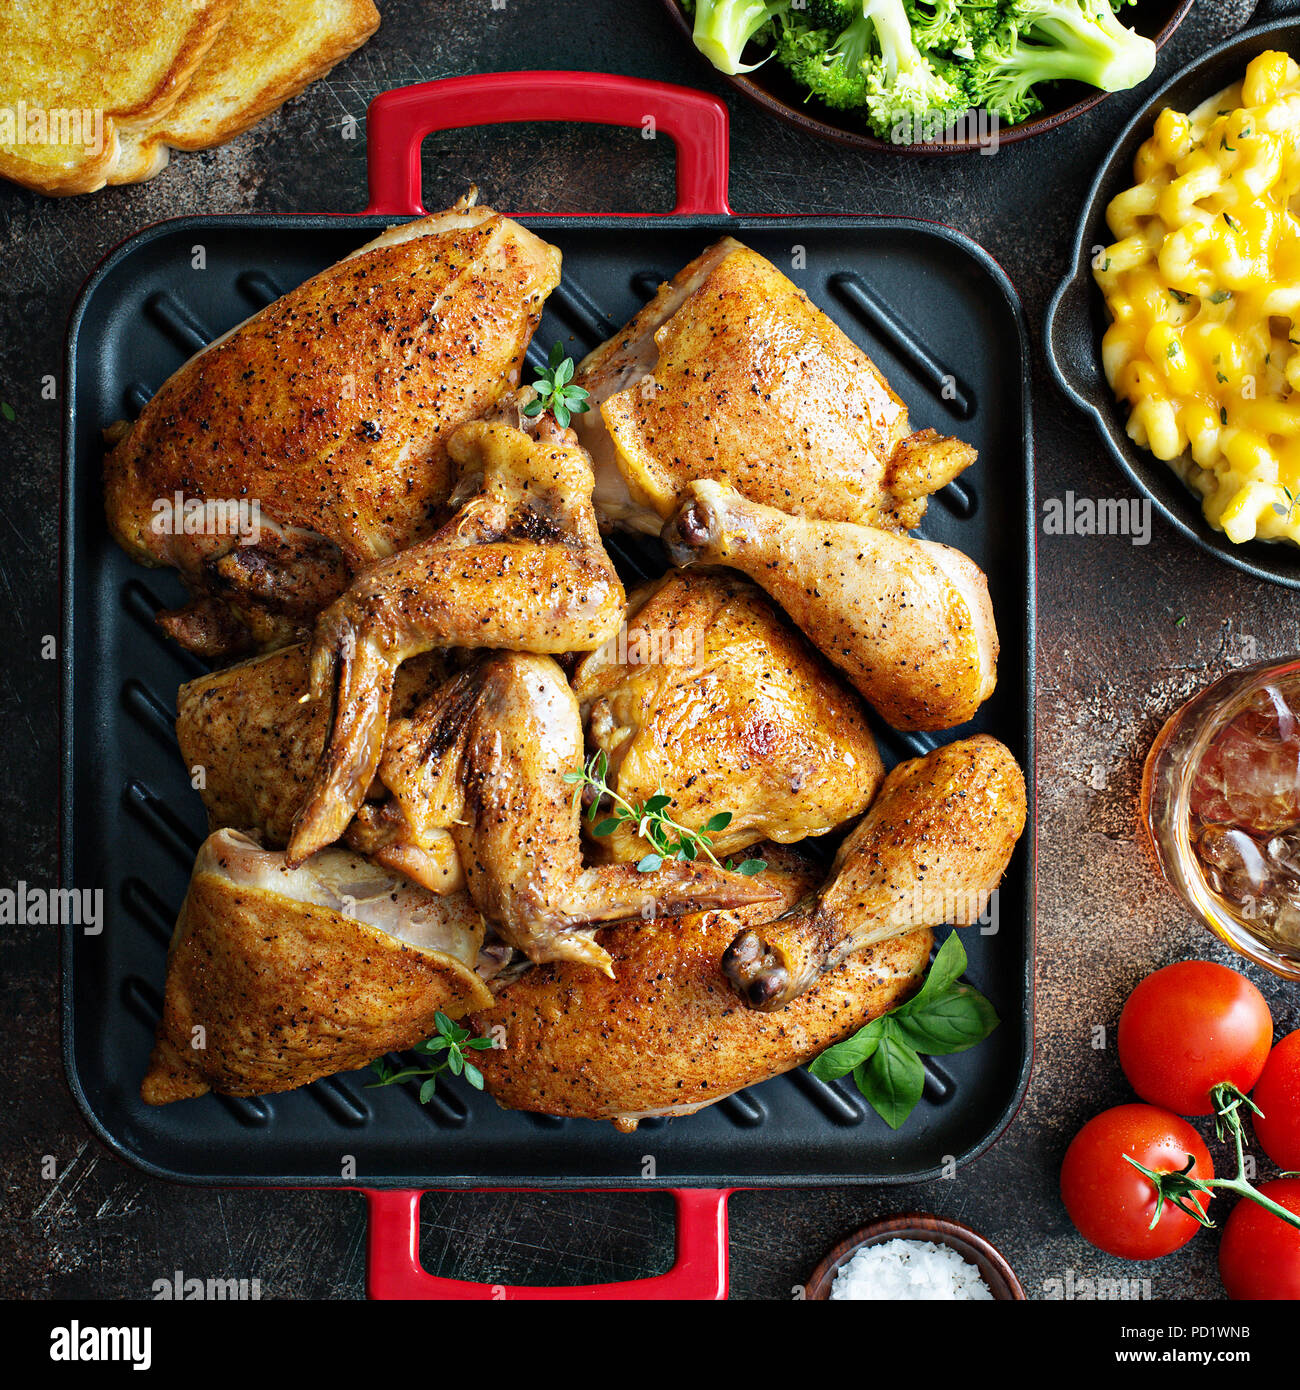 Summer dinner with grilled chicken - Stock Image